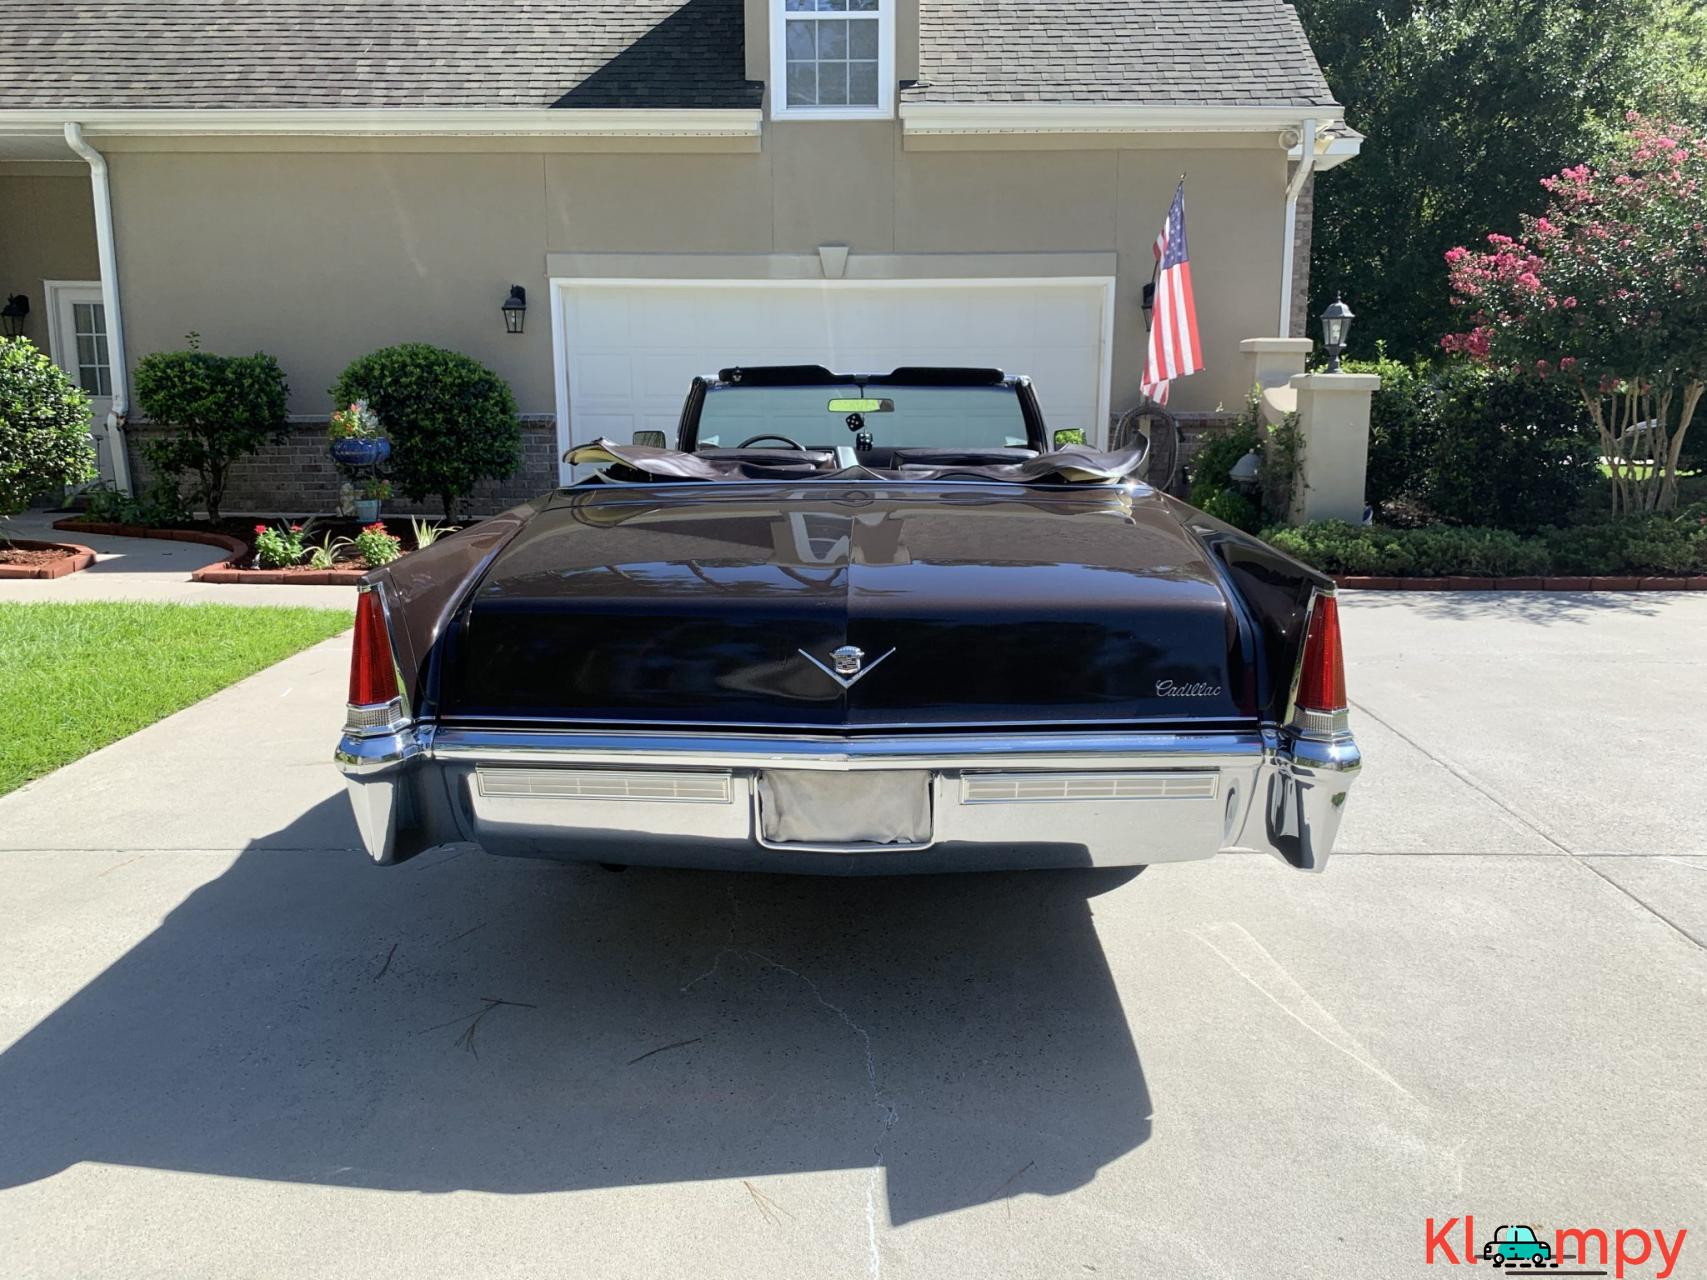 1969 Cadillac DeVille Convertible 472 3-Speed - 7/22